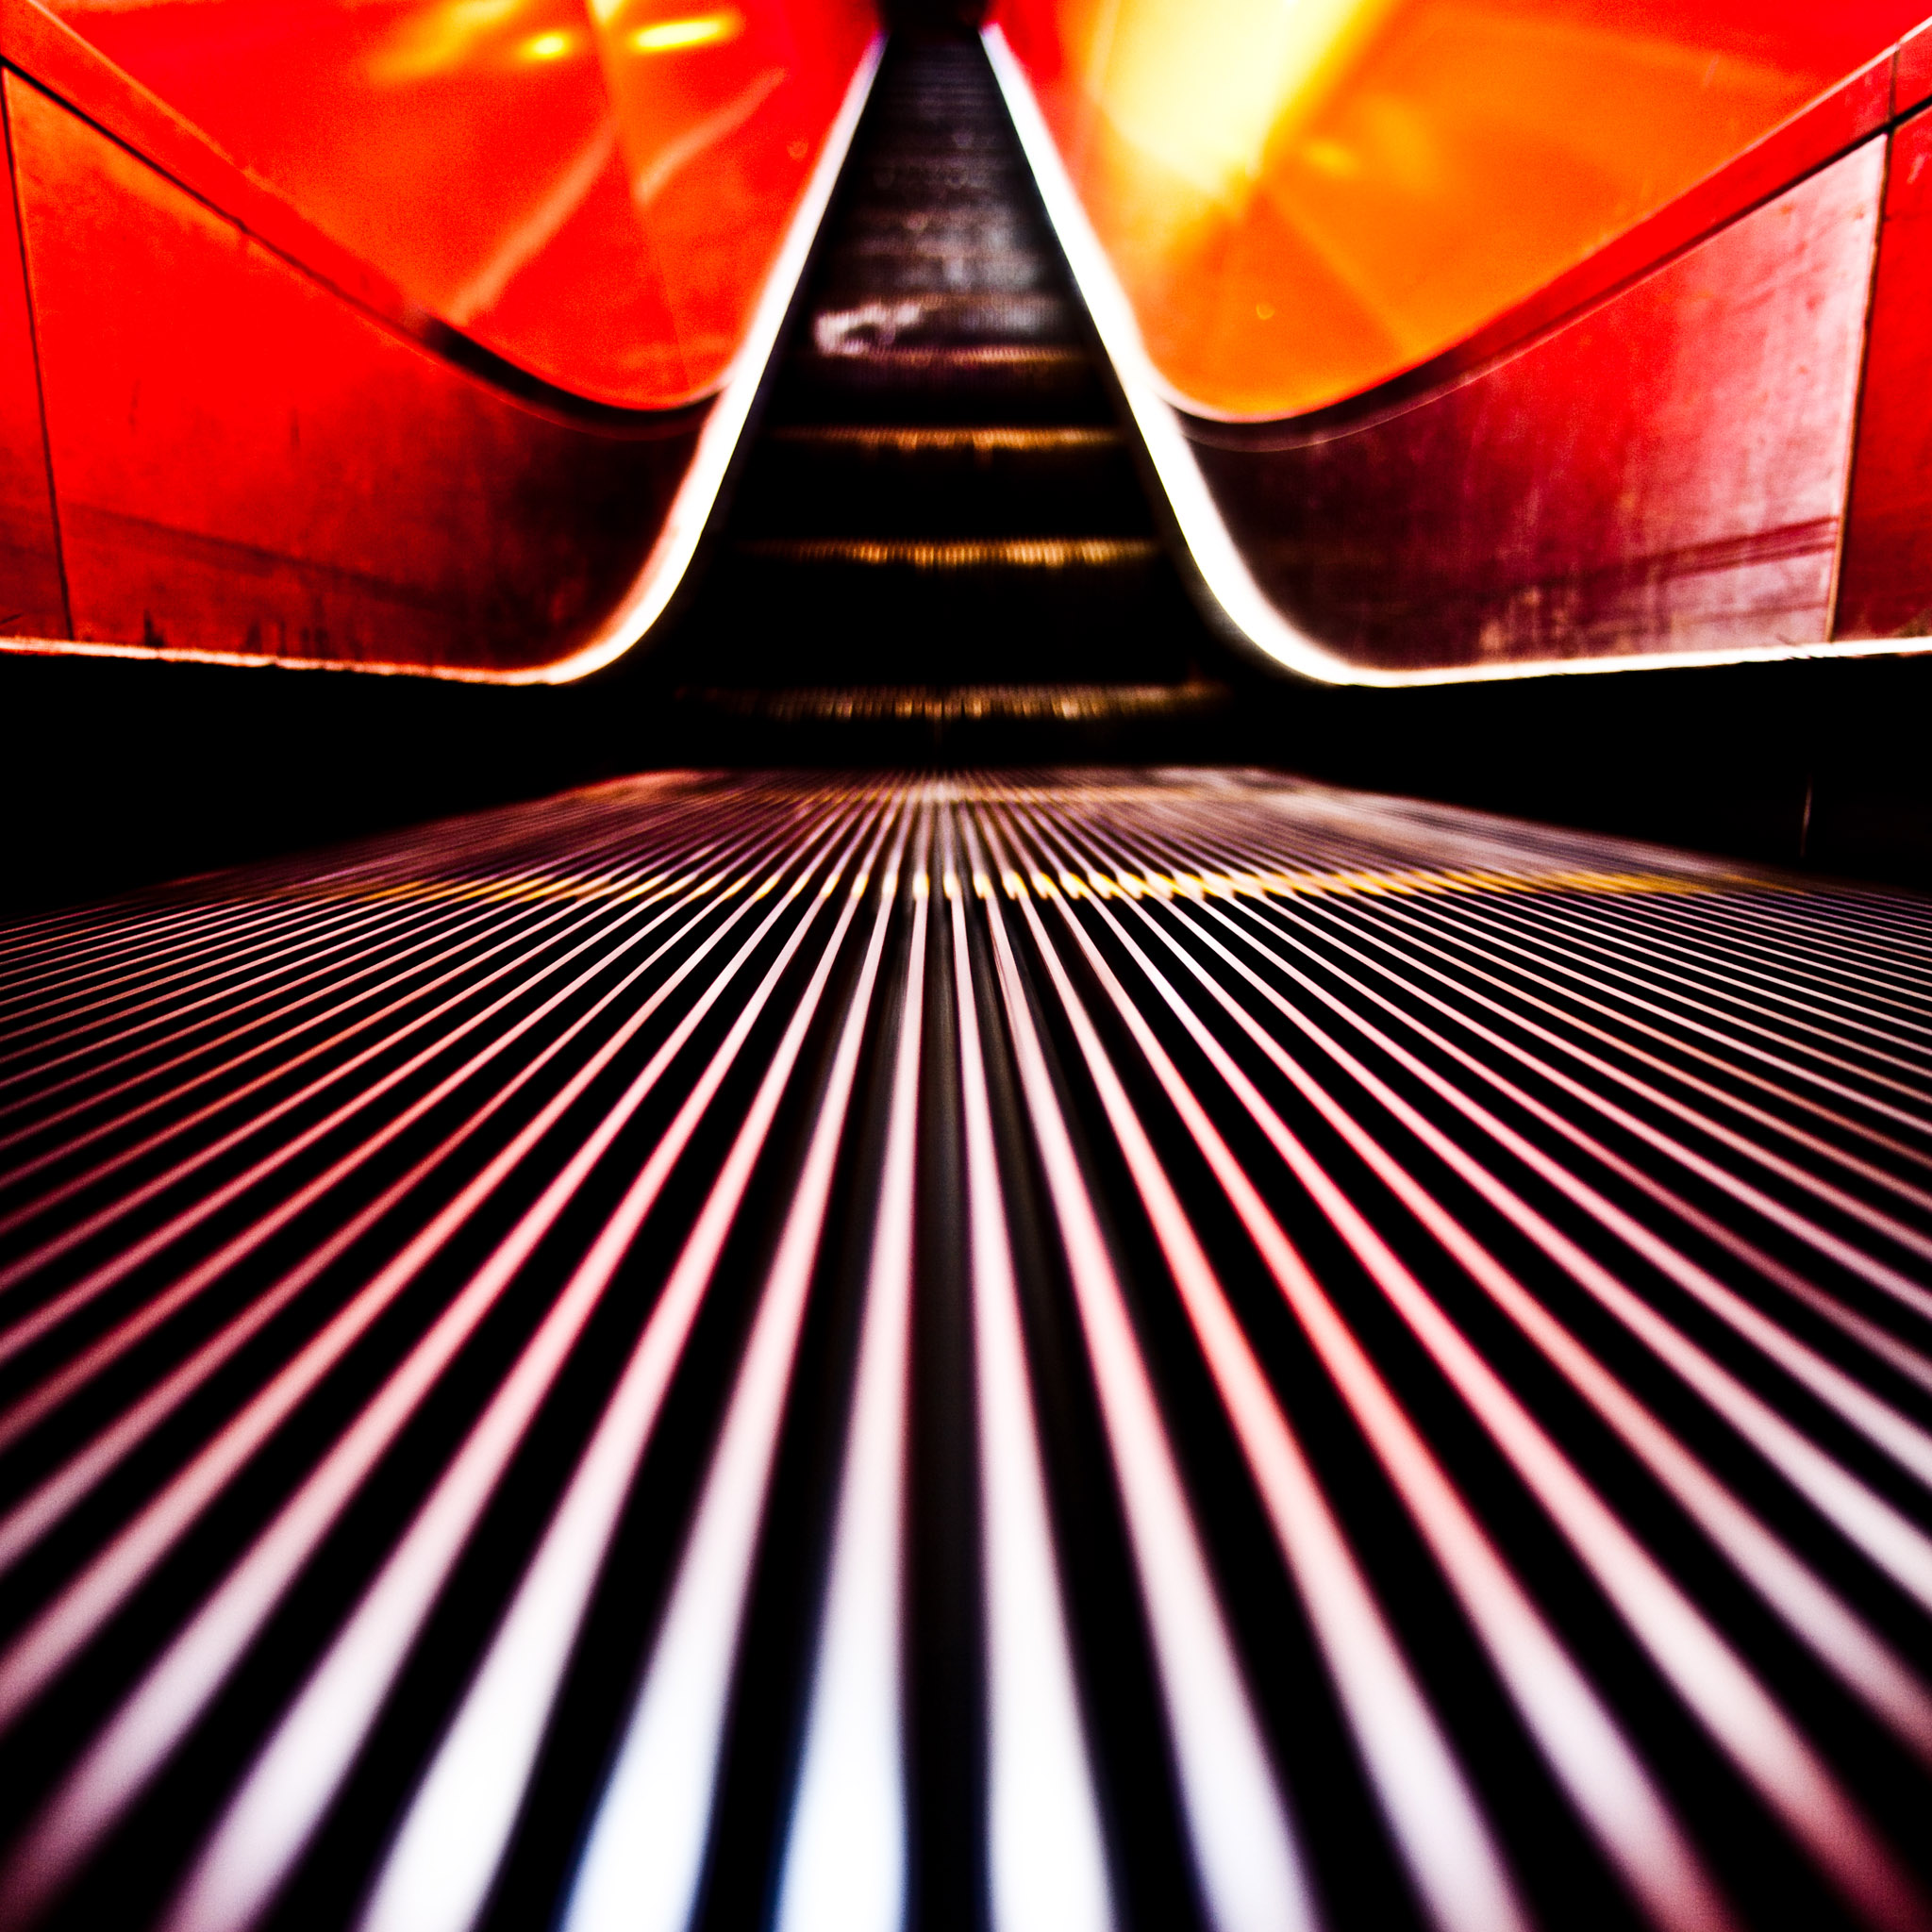 thomas hawk - escalator2 ipad wallpaper